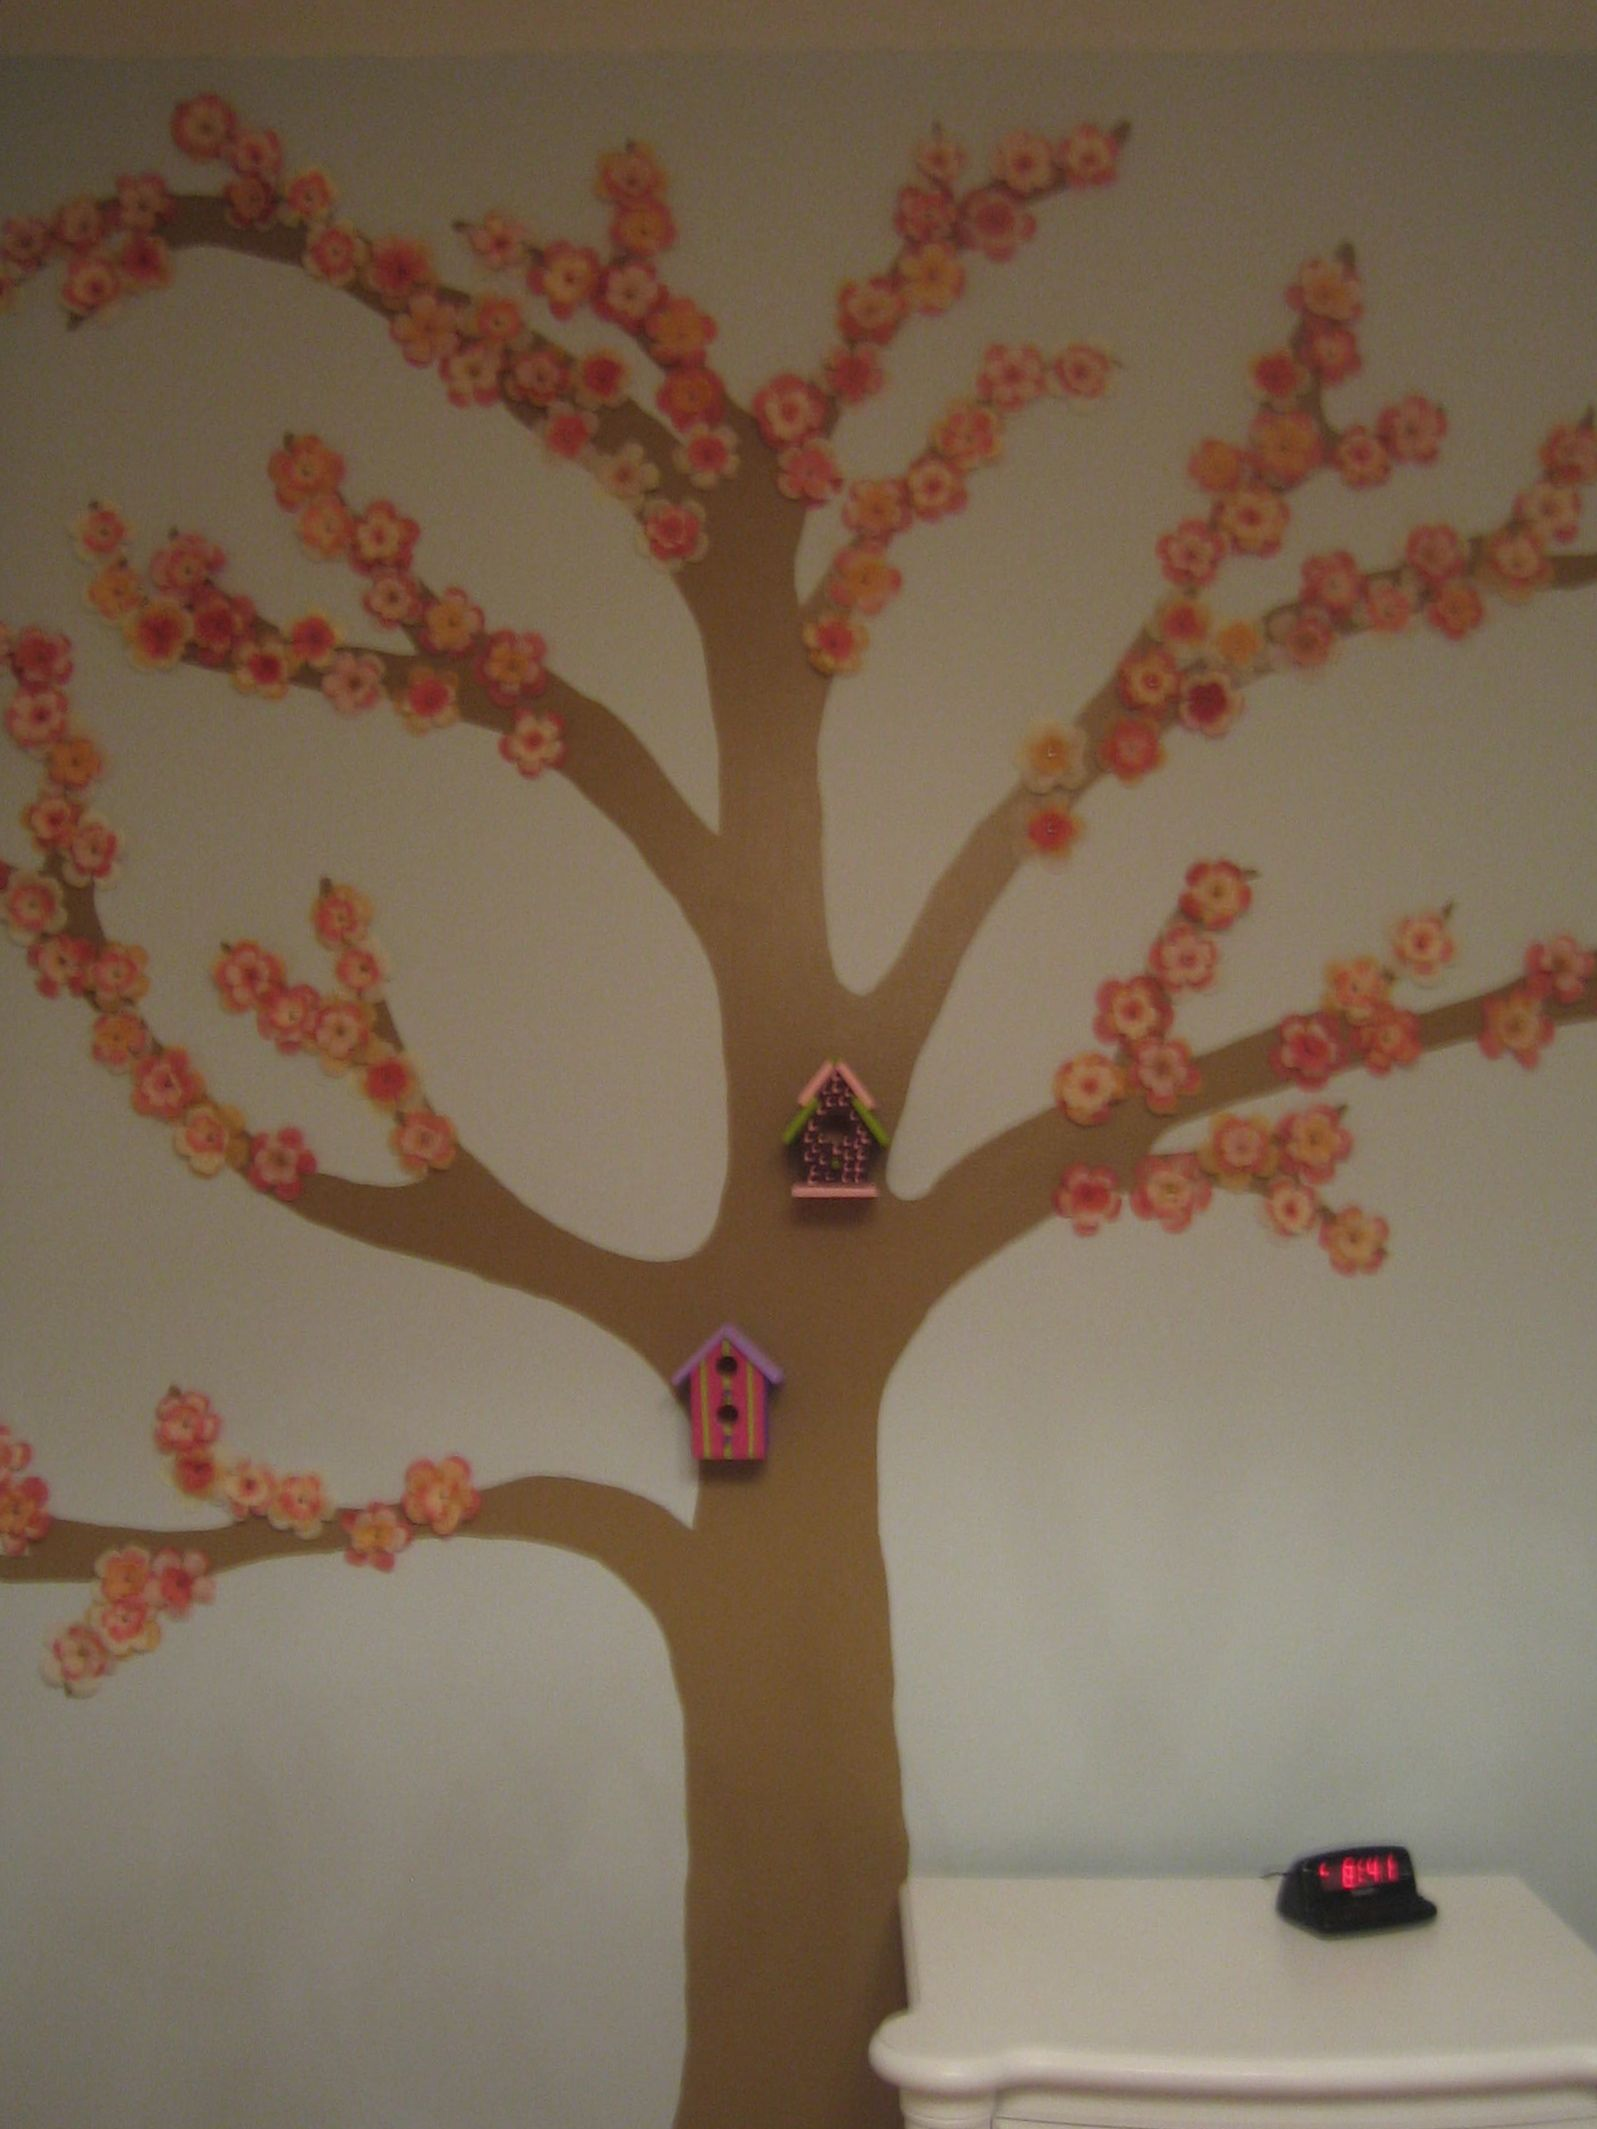 Created A Cherry Blossom Wall Mural By Using An Old School Overhead  Projector And Transparencies To Part 73